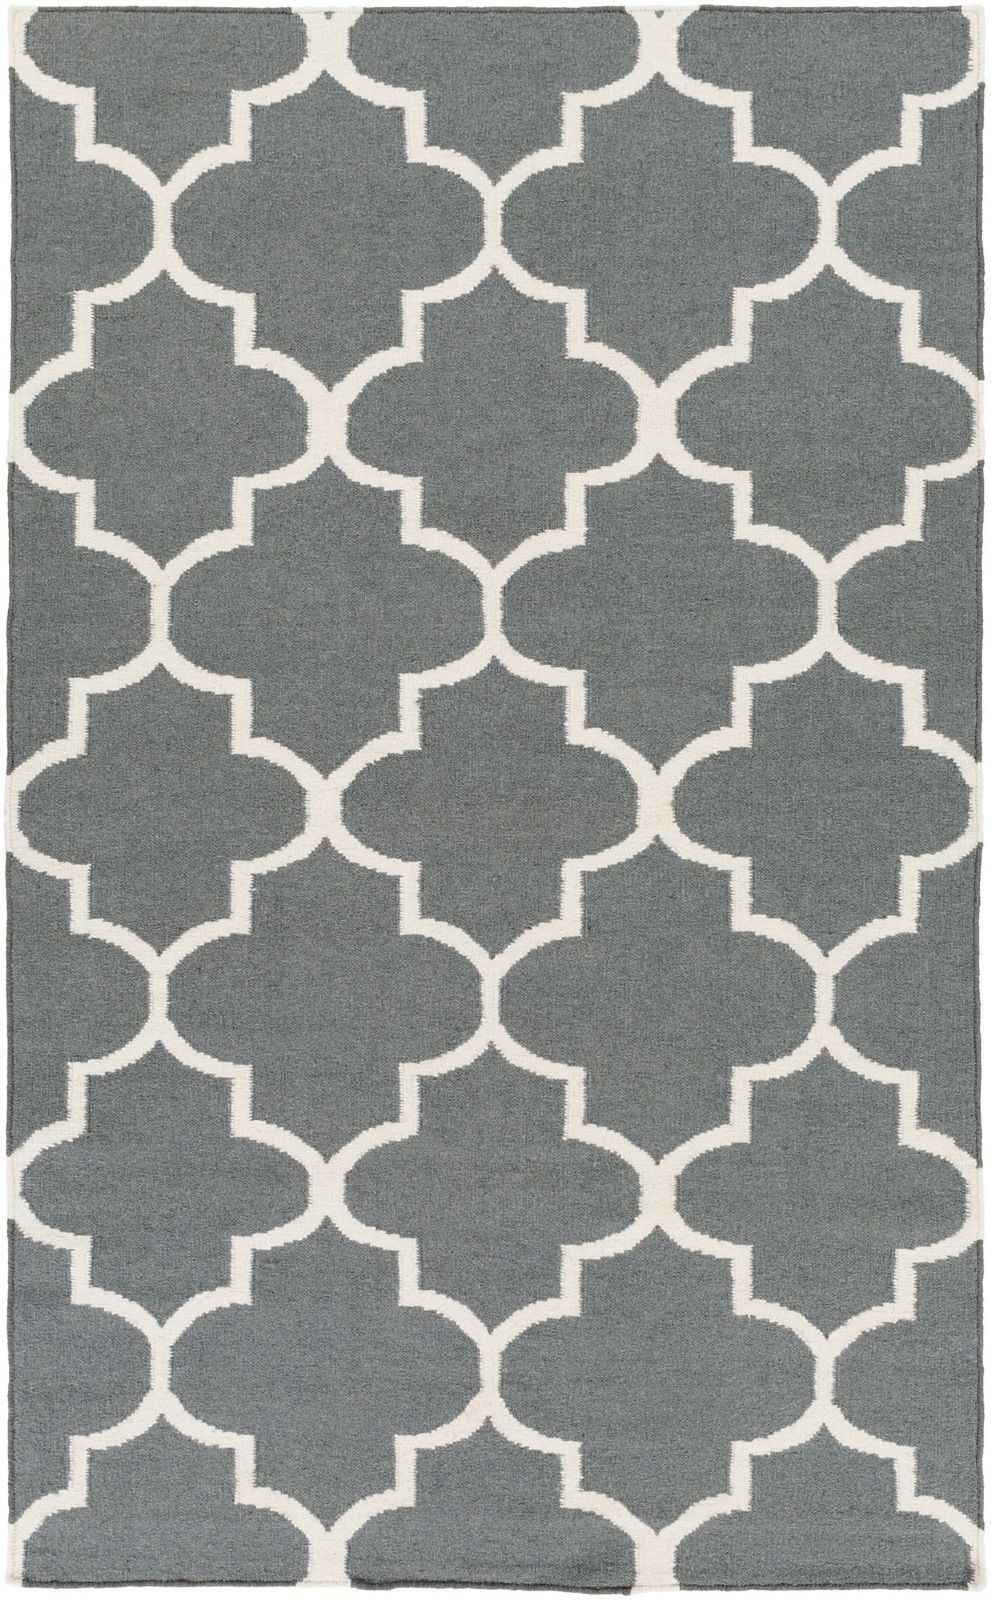 Artistic Weavers York Mallory Contemporary Area Rug